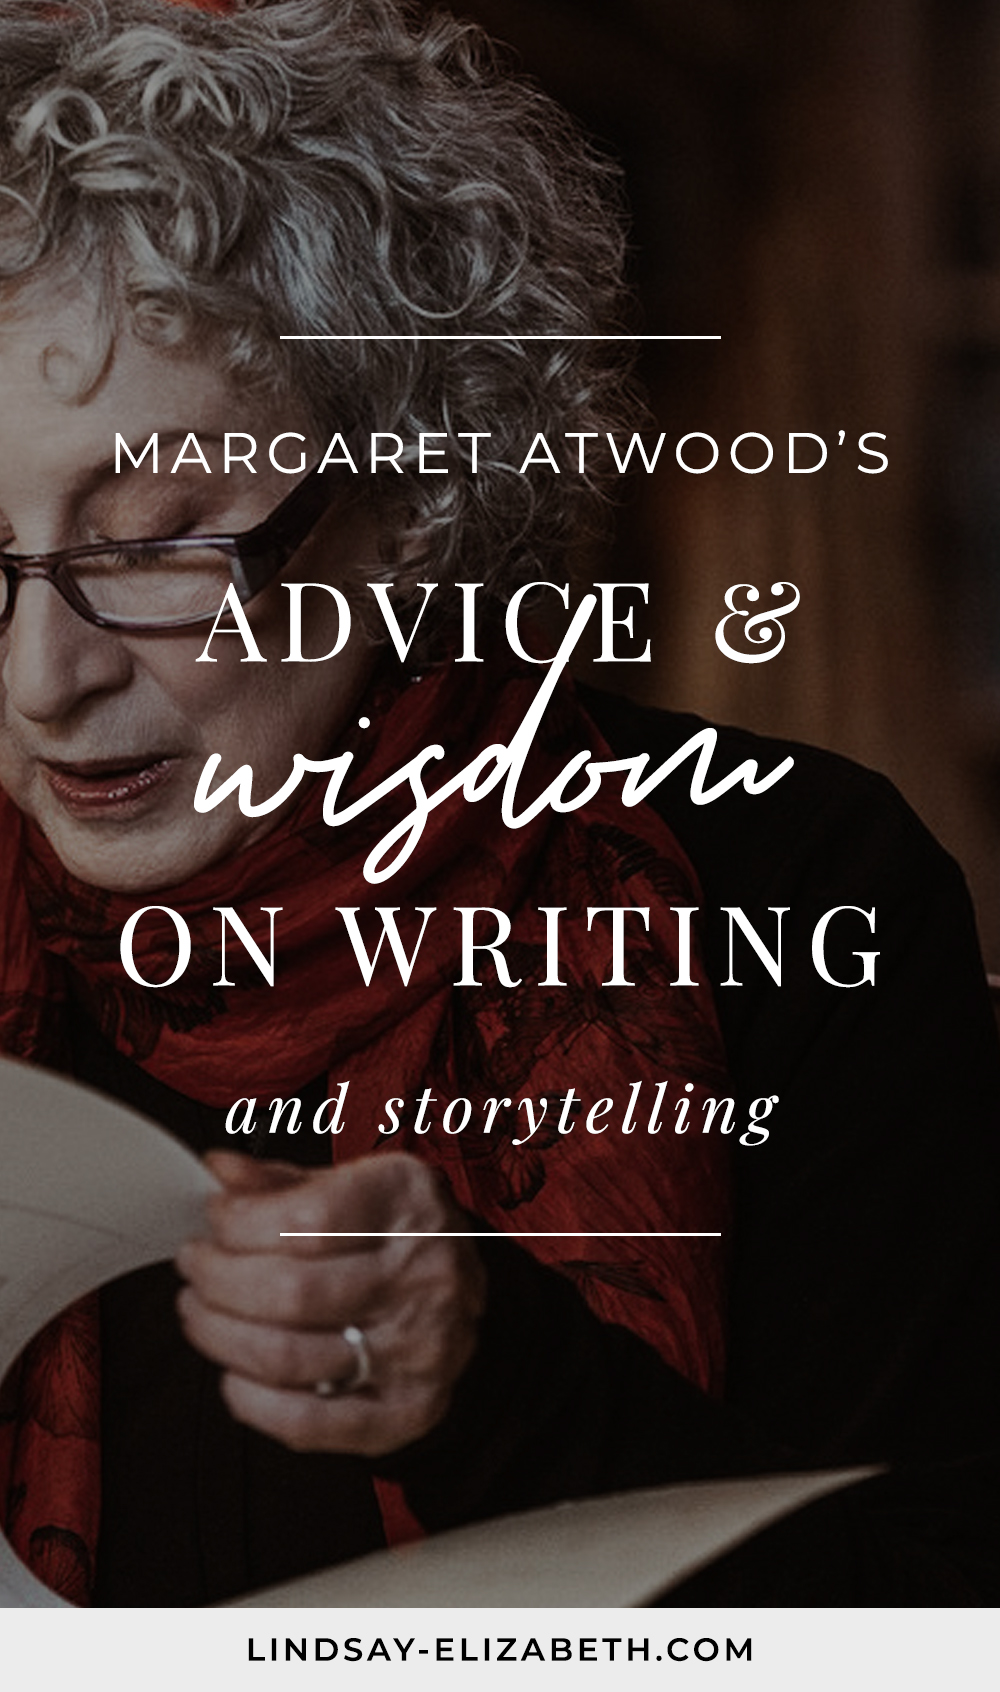 Get insight into the craft of writing and storytelling from one of the greats, Margaret Atwood (the esteemed author of The Handmaid's Tale and other popular works of speculative and dystopian fiction) from her MasterClass on creative writing as she shares her rich experience on topics on everything from story and plot to creating compelling characters. #writers #authors #writingtips